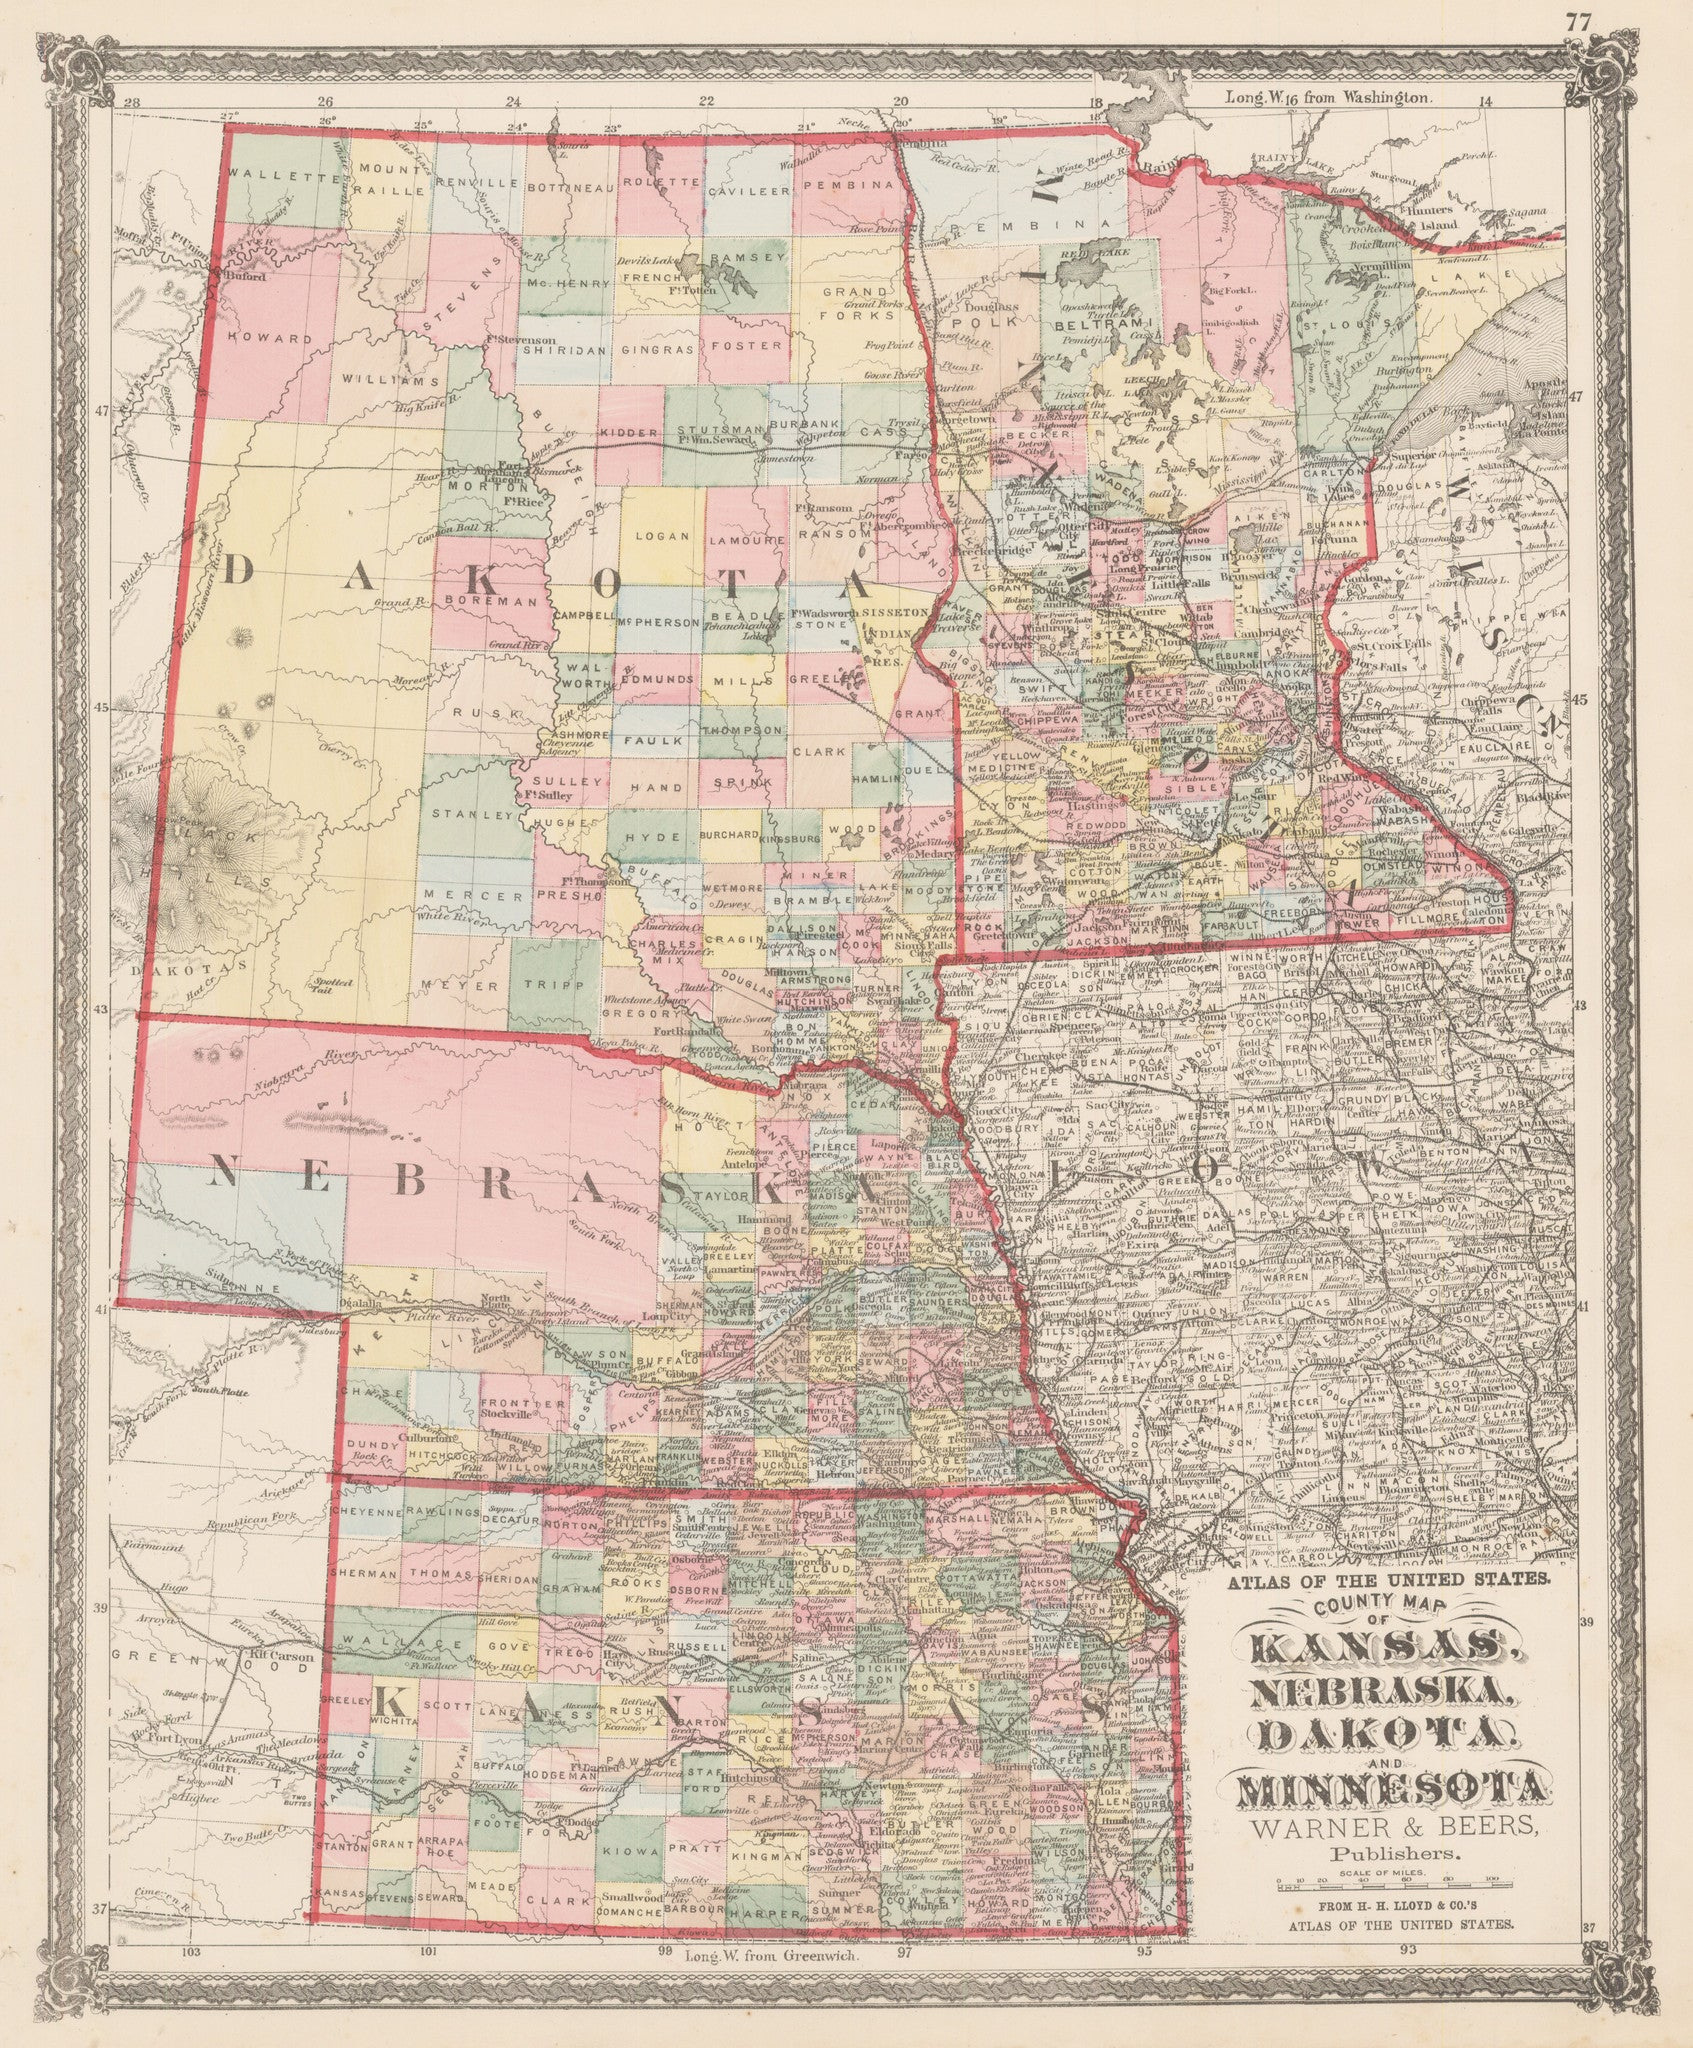 HJBMaps.com : County Map of Kansas, Nebraska, Dakota, and Minnesota.  By: Warner & Beers  Date: 1875 (Published) Chicago  Dimensions: 17.5 x 14.5 inches (44.5 cm x 36.8 cm)